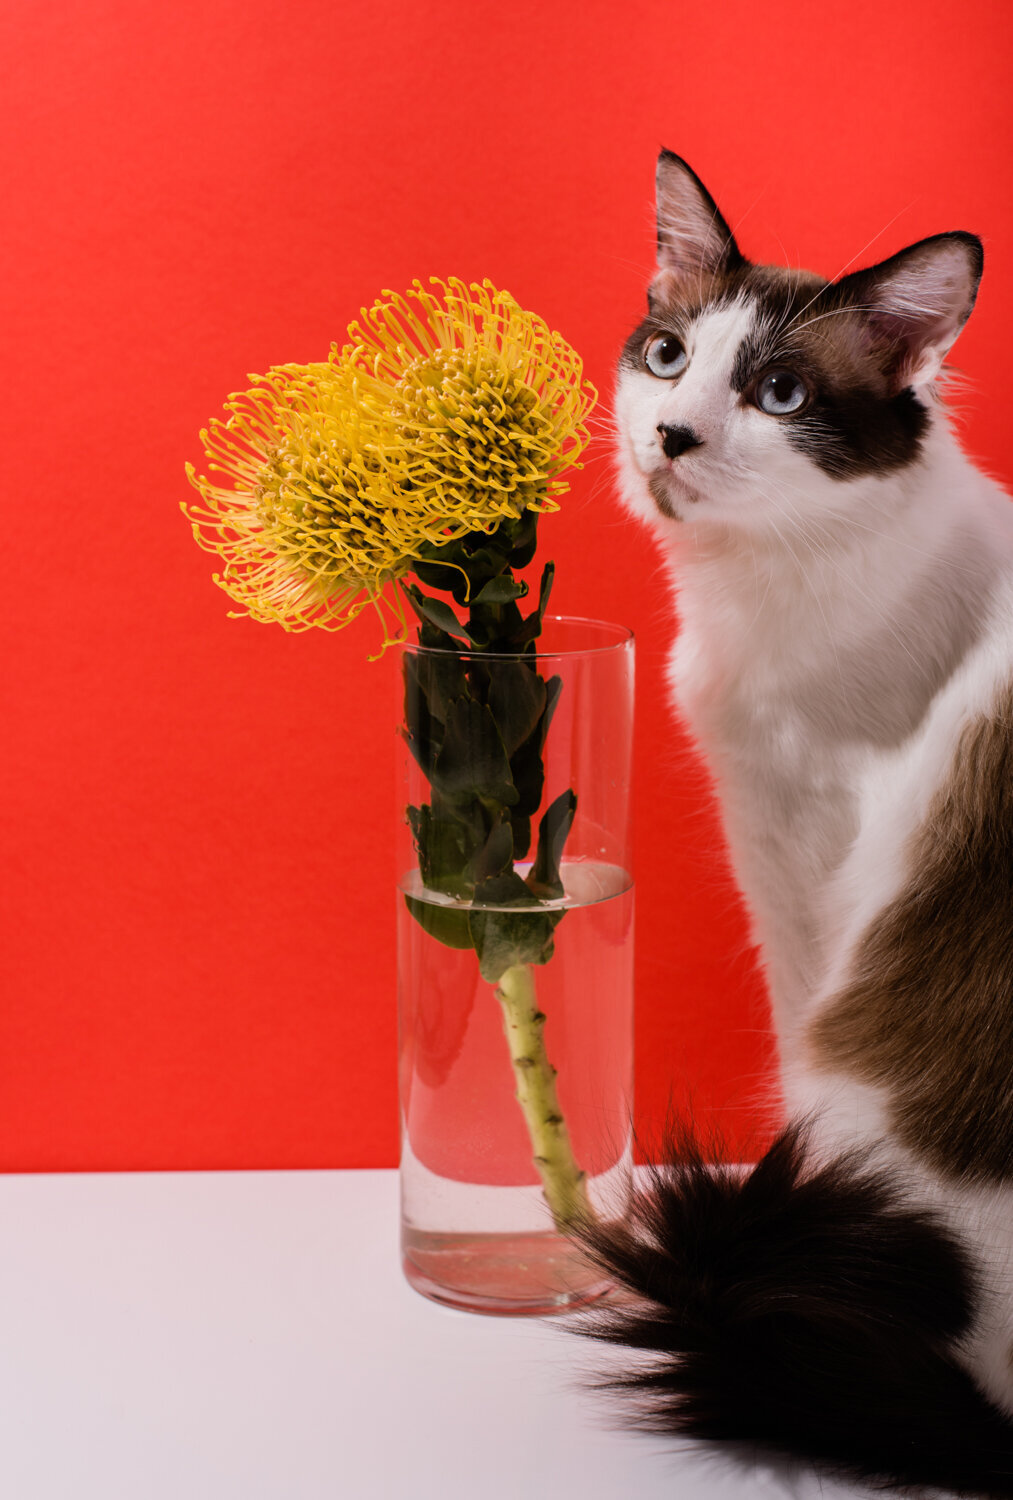 los-angeles-product-photographer-lindsay-kreighbaum-cat-still-life-floral-2-2